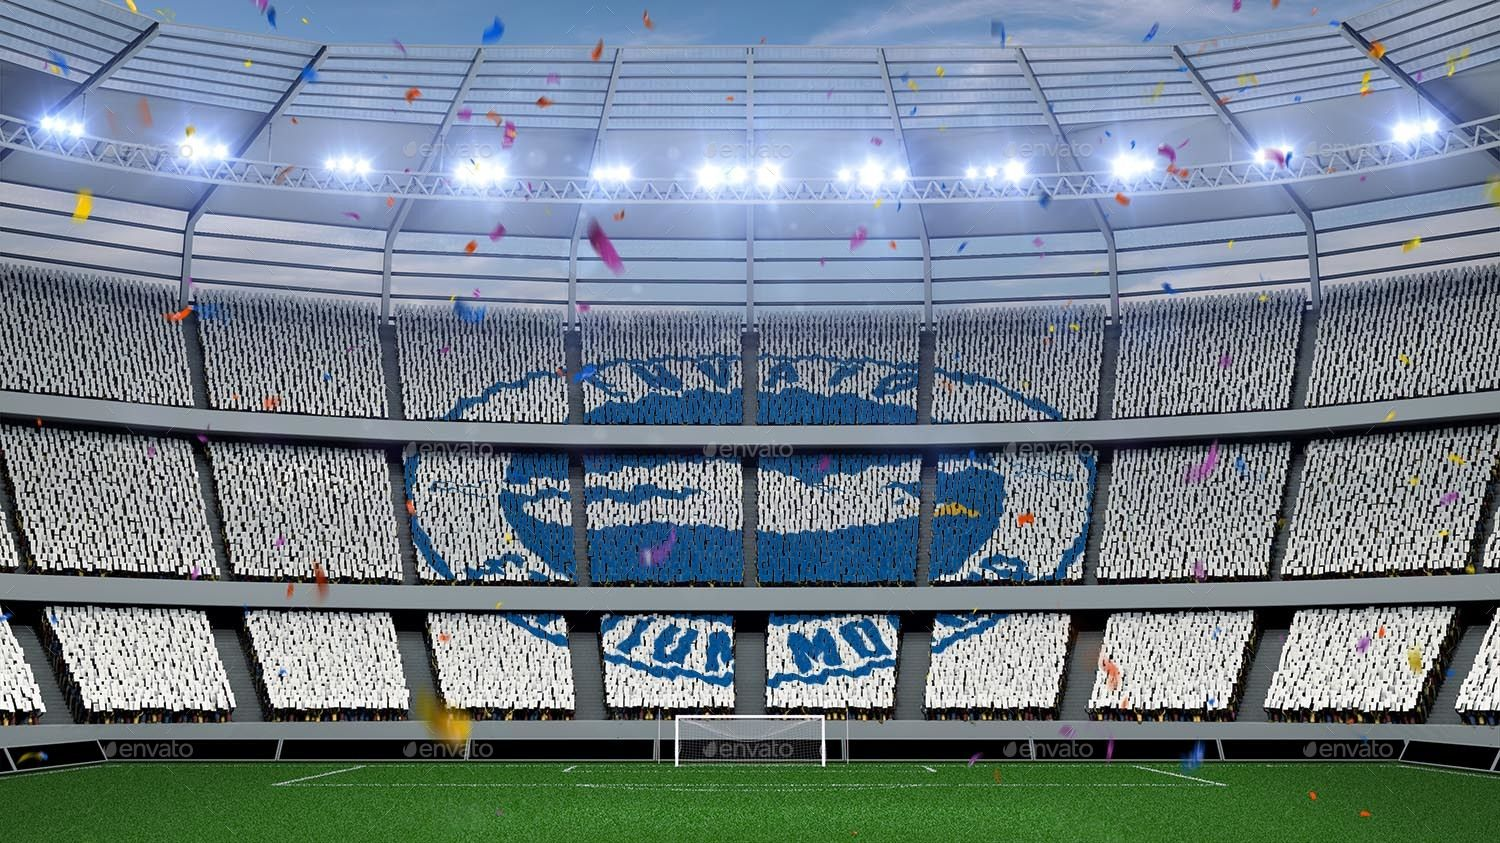 Football Stadium Fans Banners Mockup Ad Stadium Sponsored Football Fans Mockup Football Stadiums Stadium Football